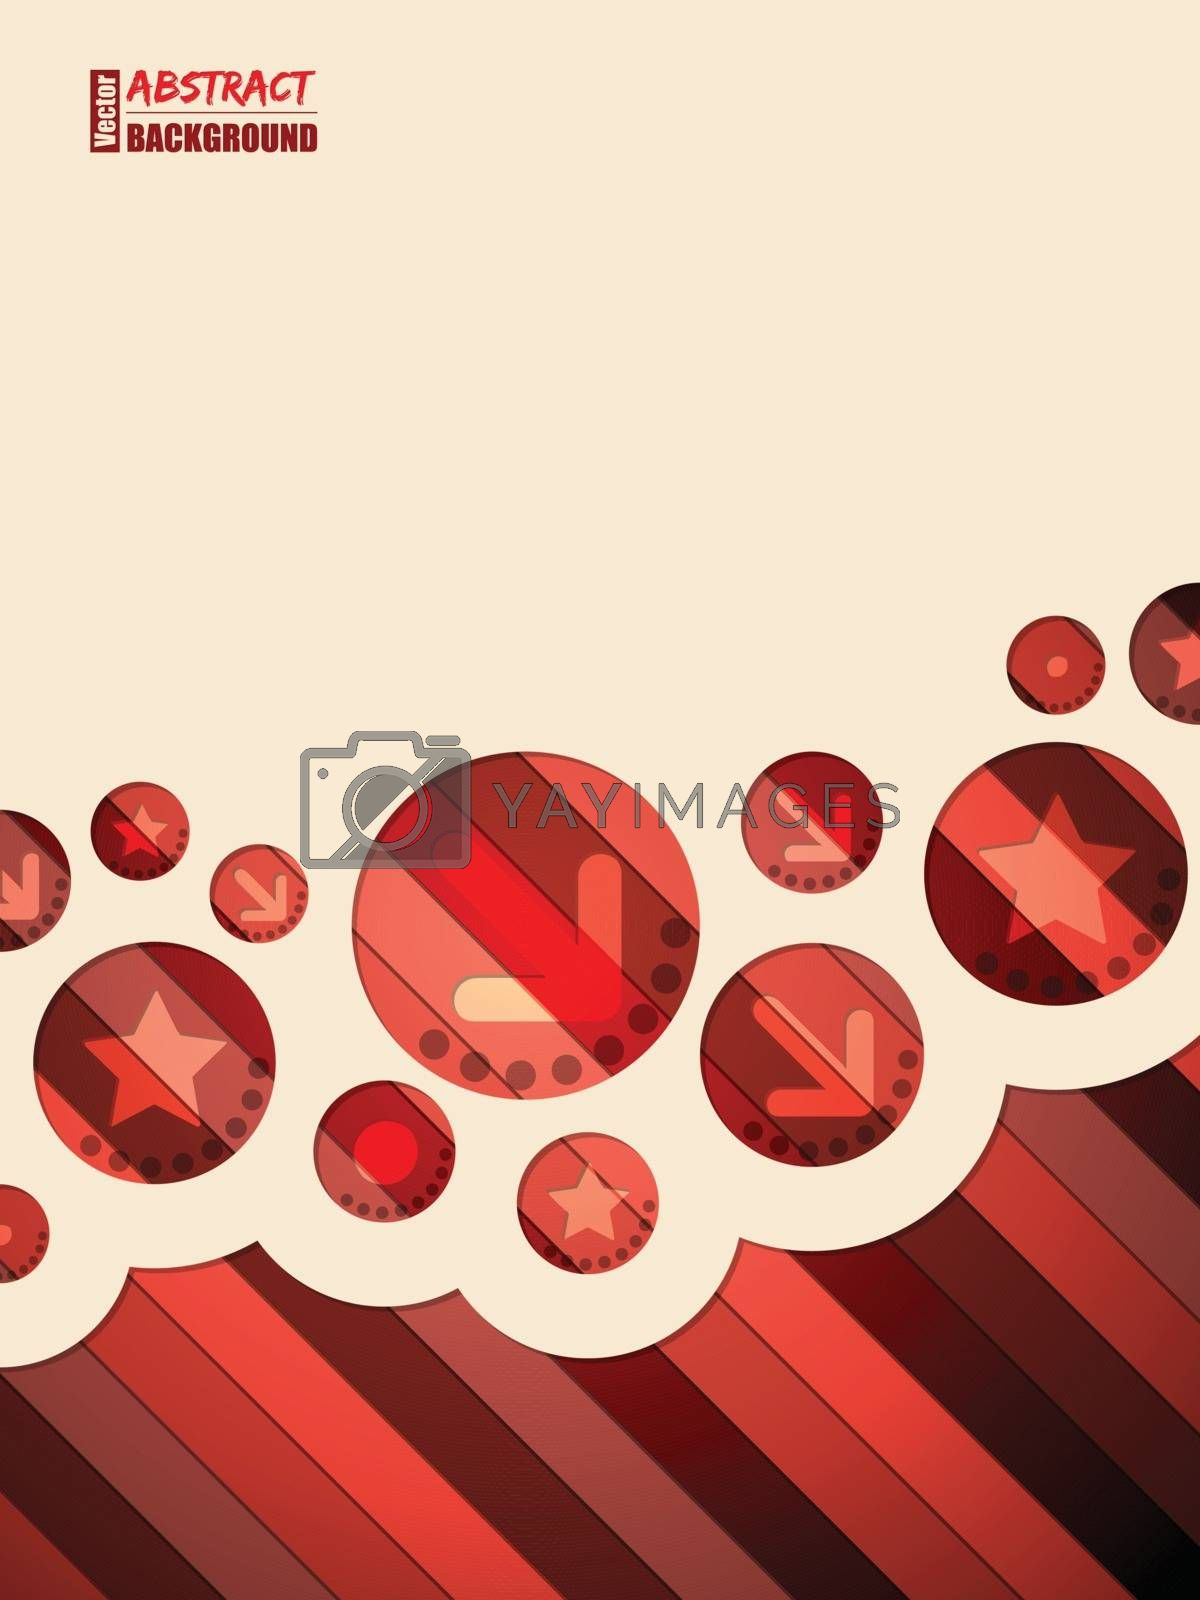 Abstract red brochure design with stars and arrows